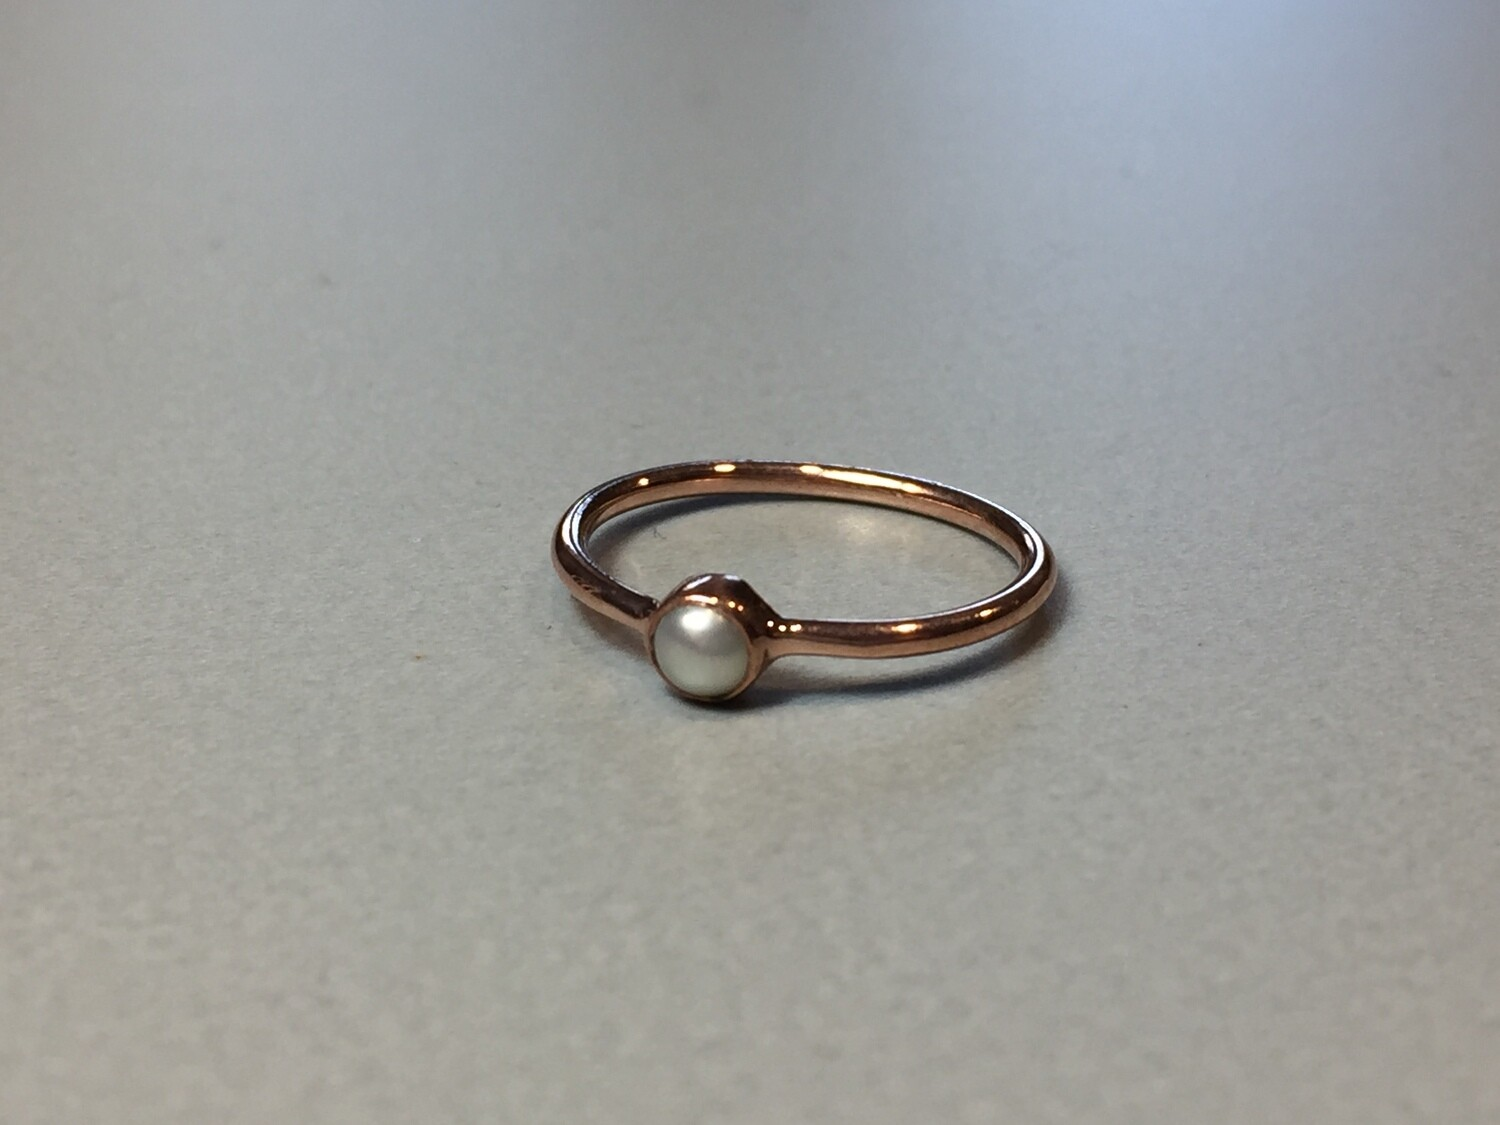 Silberring rose vergoldet mit Miniperle